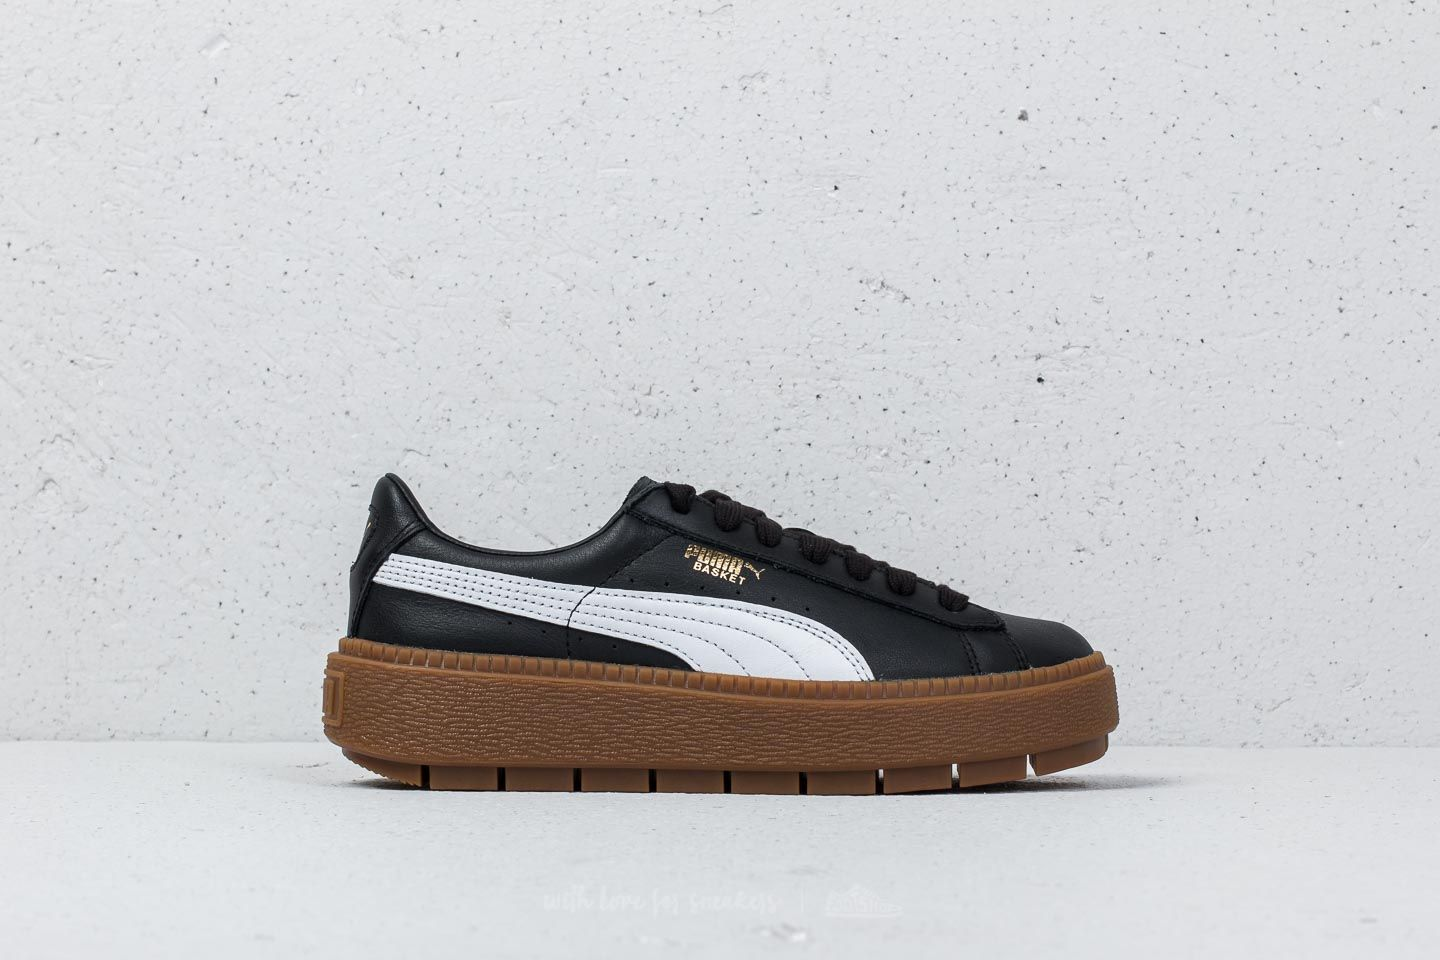 wholesale dealer 9a67f badfc Puma Platform Trace L Wn's Puma Black/ Puma White | Footshop